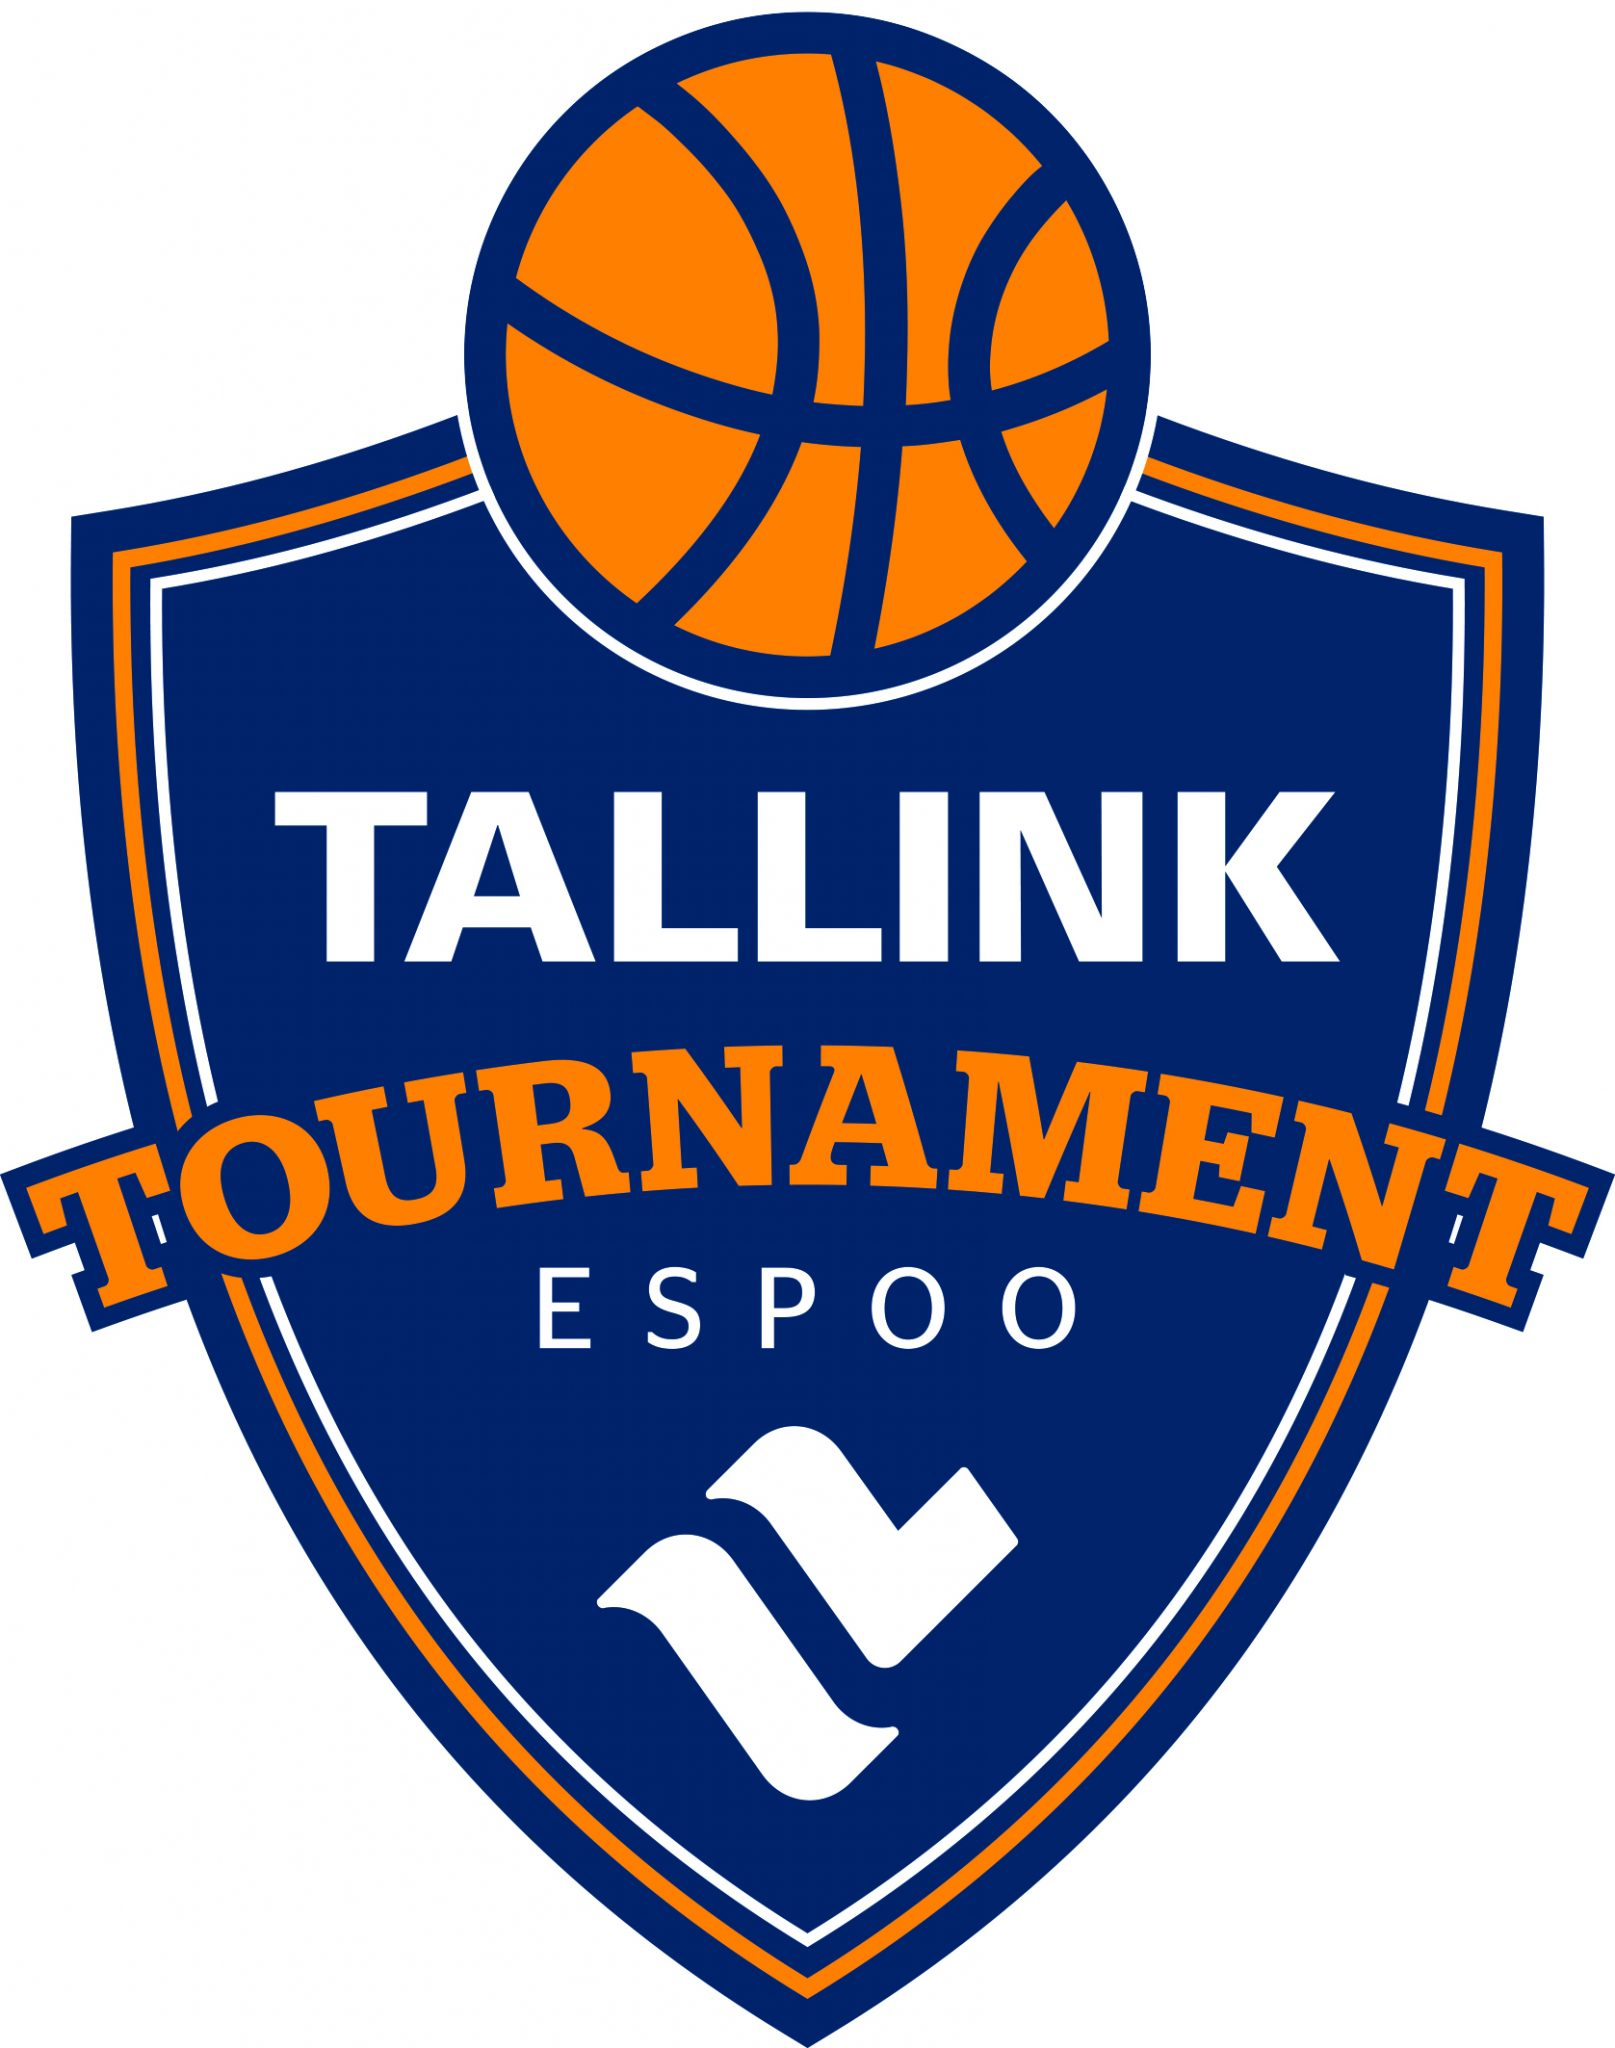 https://sykki.fi/wp-content/uploads/2017/08/Tallink_Bball_Espoo_Tournament_Logo_CMYK.jpg